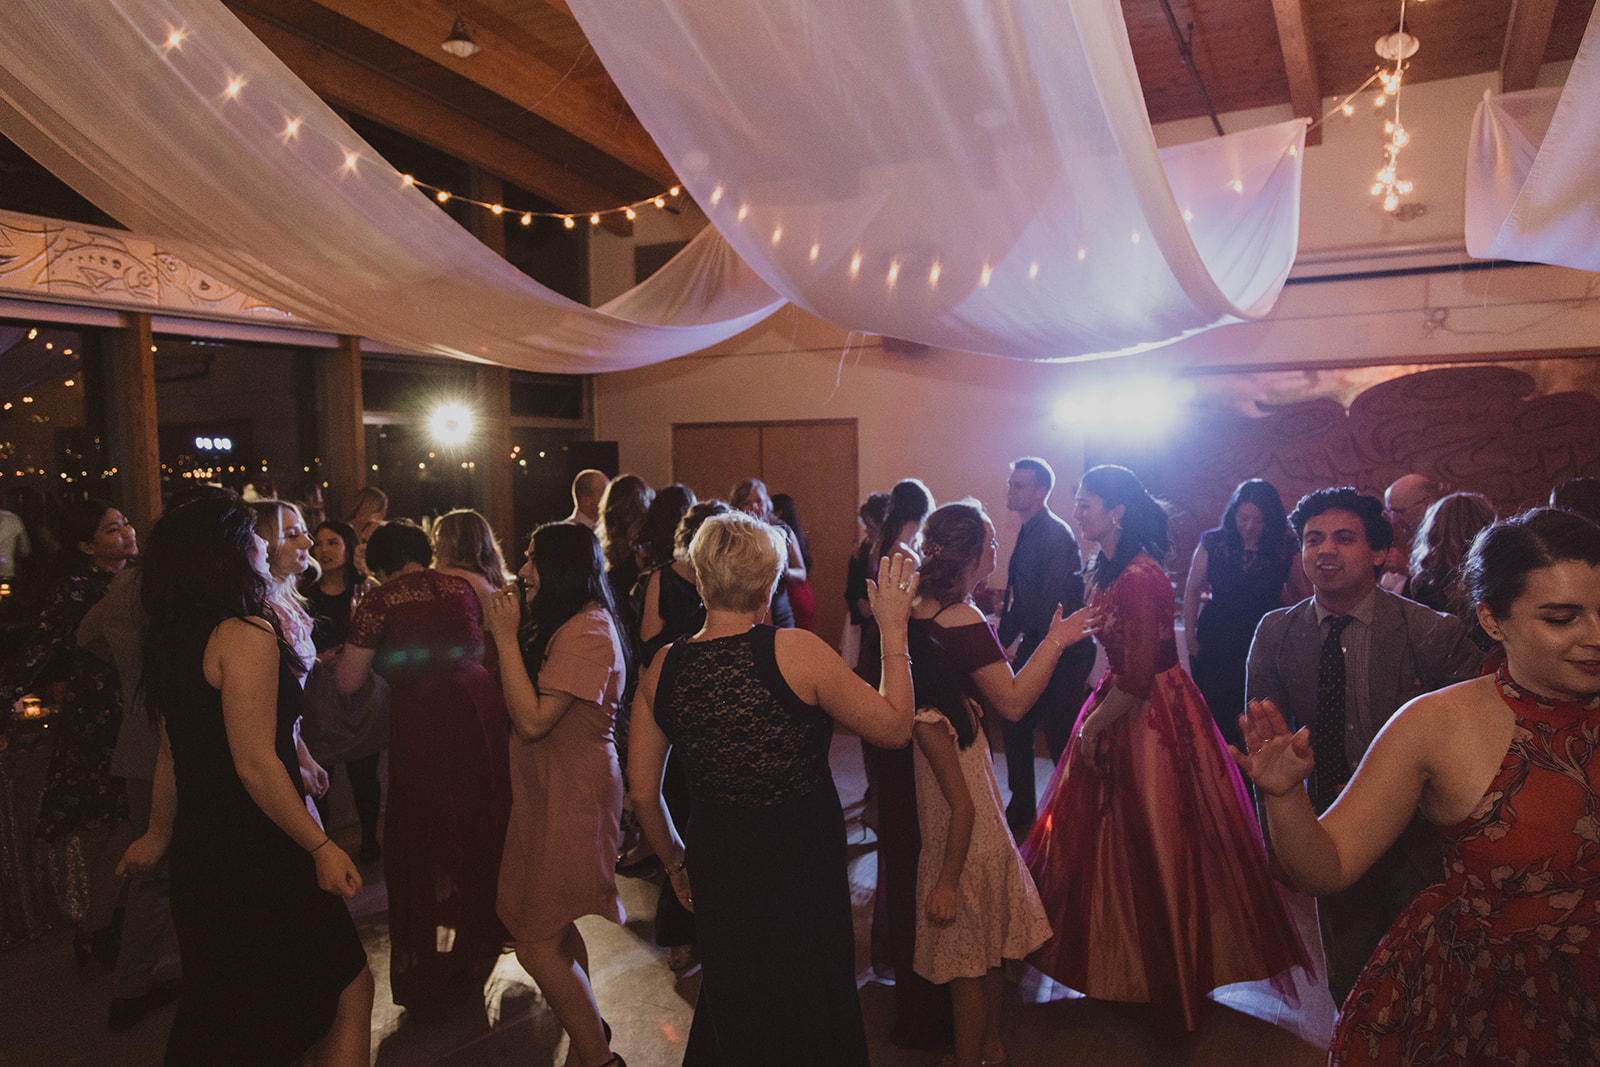 UBC Boathouse Wedding guests dance under white fabric ceiling treatment and industrial lights by Proline International Trading Vancouver